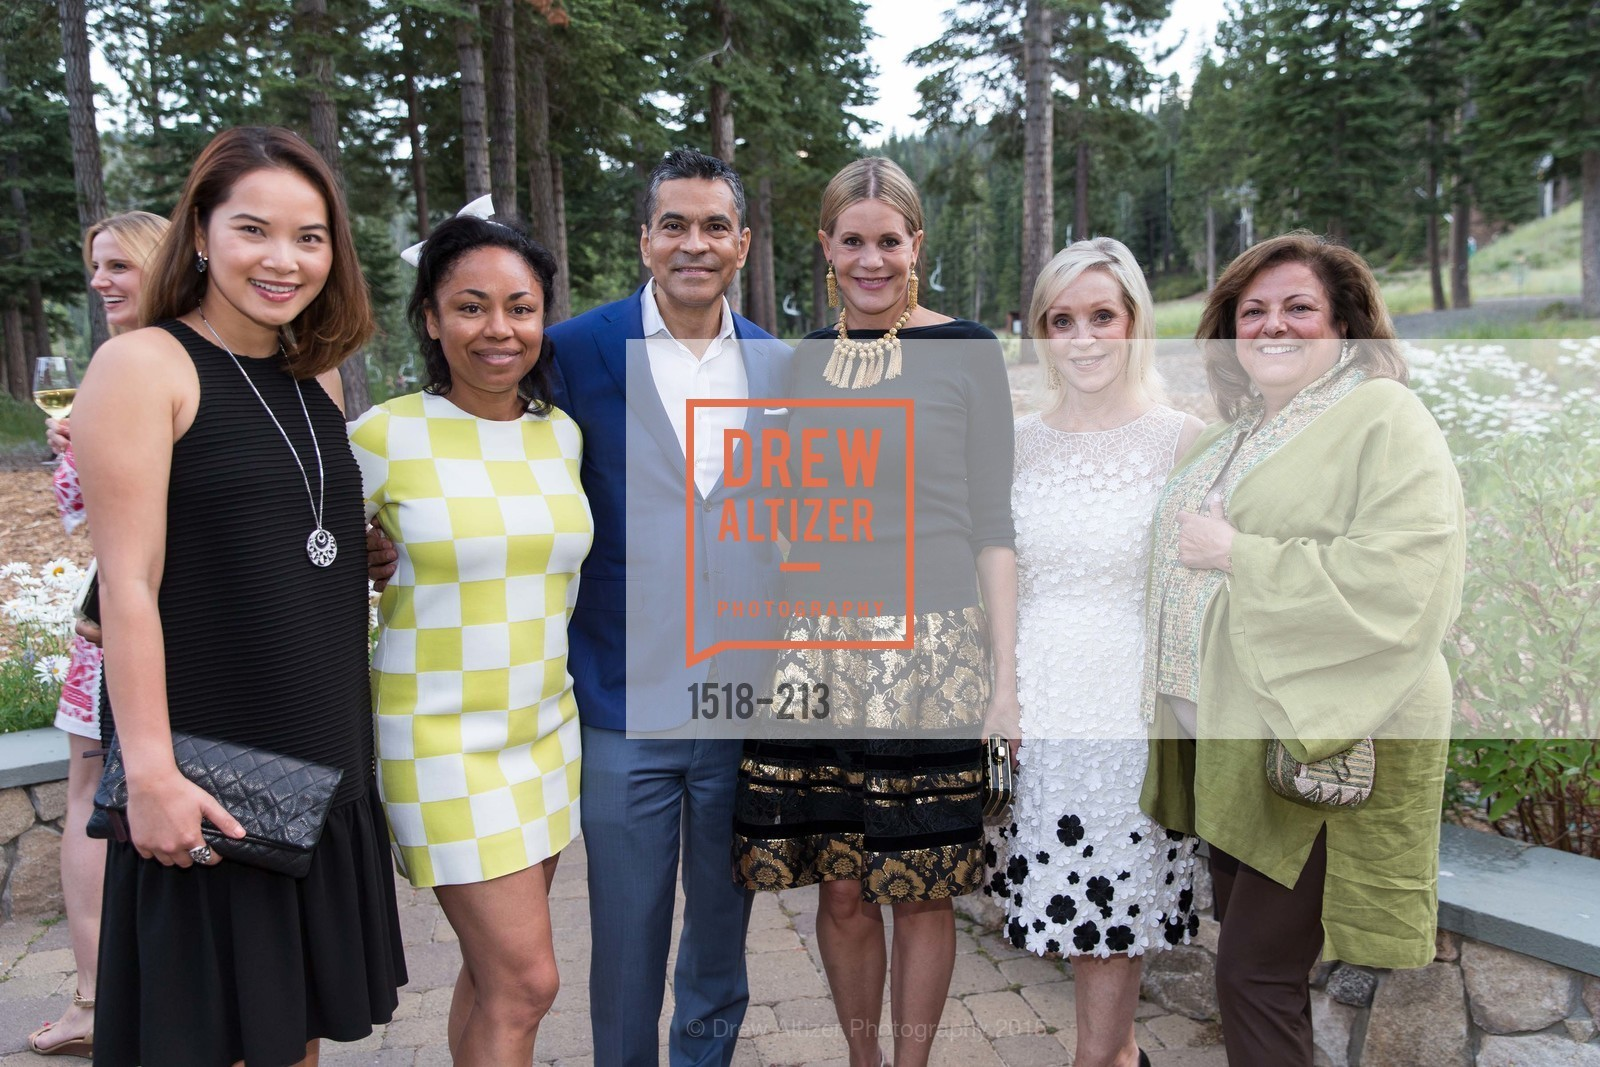 Dien Nguyen, Tanya Powell, Daniel Diaz, Mary Beth Shimmon, Barbara Brown, League to Save Lake Tahoe Sponsor Cocktail Party, Ritz-Carlton, Lake Tahoe, July 31st, 2015,Drew Altizer, Drew Altizer Photography, full-service agency, private events, San Francisco photographer, photographer california